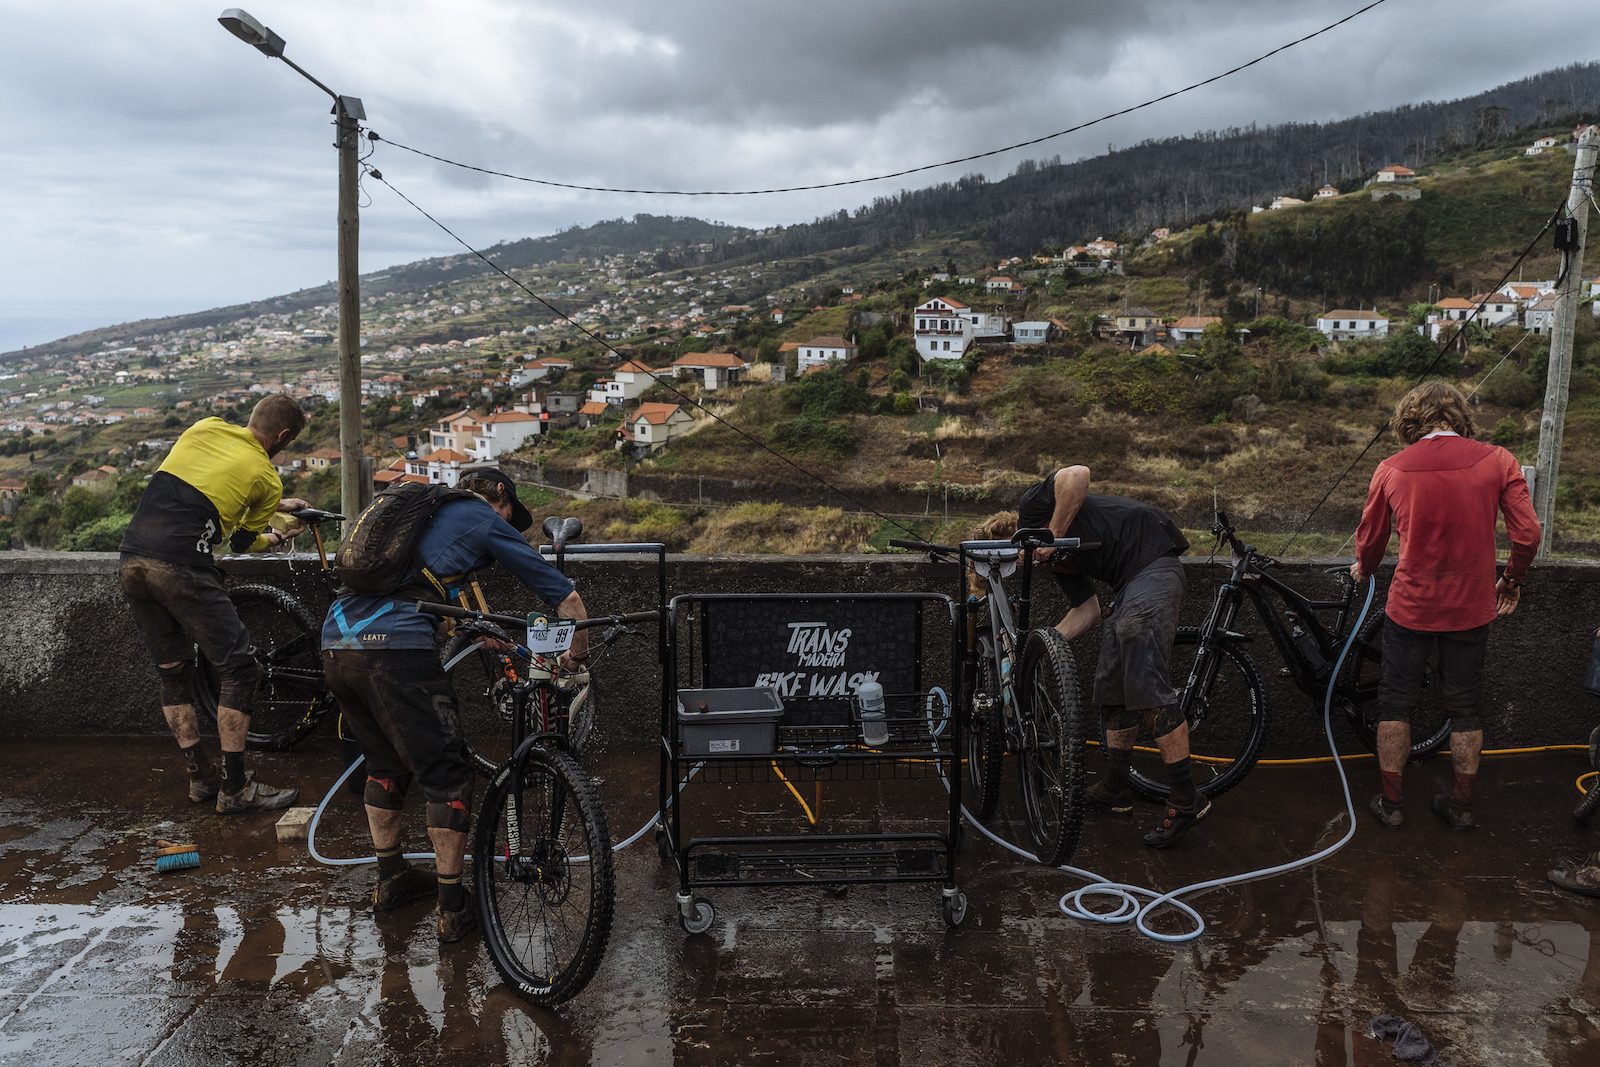 Bike wash with a view.